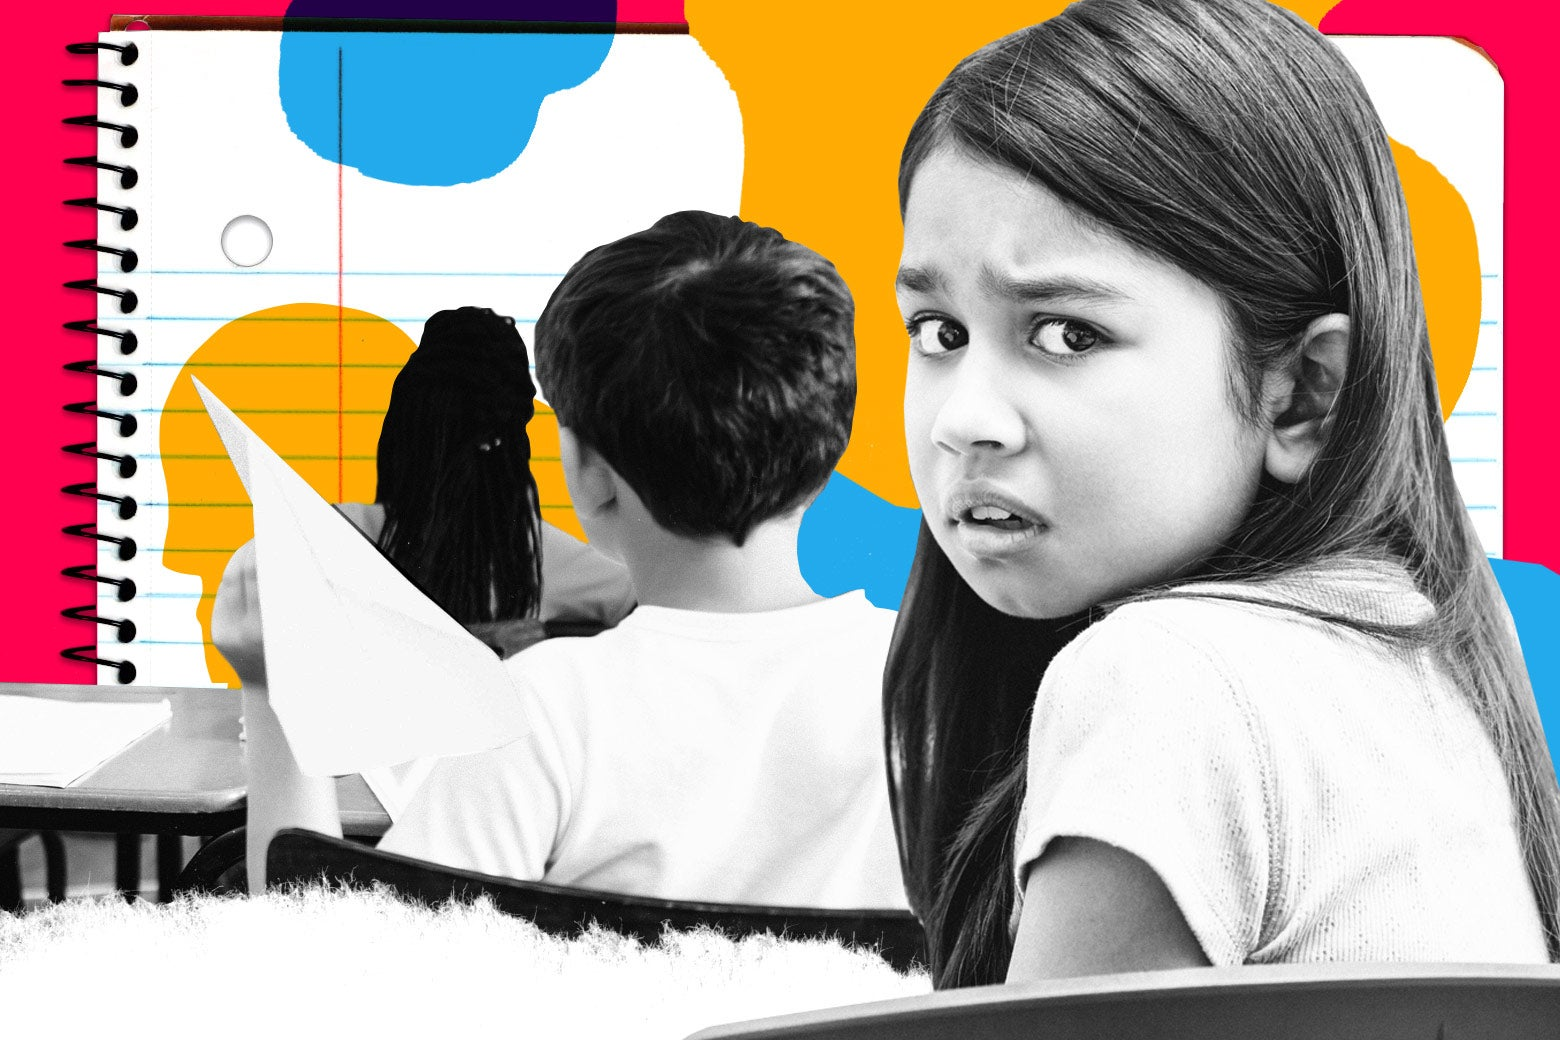 Photo collage of girl looking upset and a boy throwing an airplane in classroom.